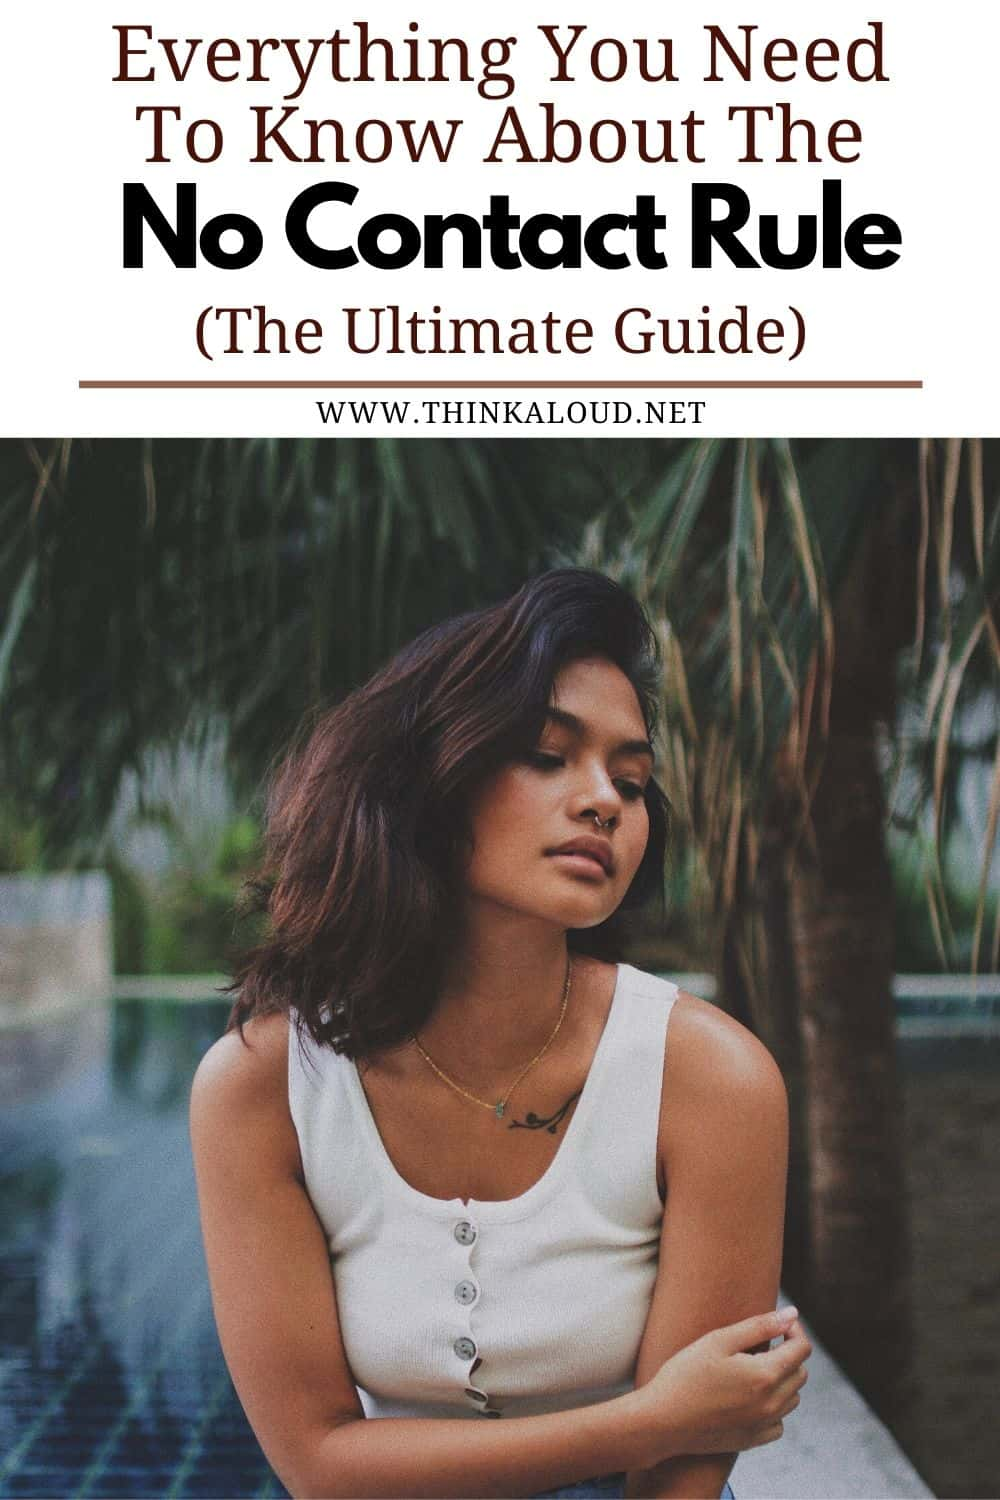 Everything You Need To Know About The No Contact Rule (The Ultimate Guide)